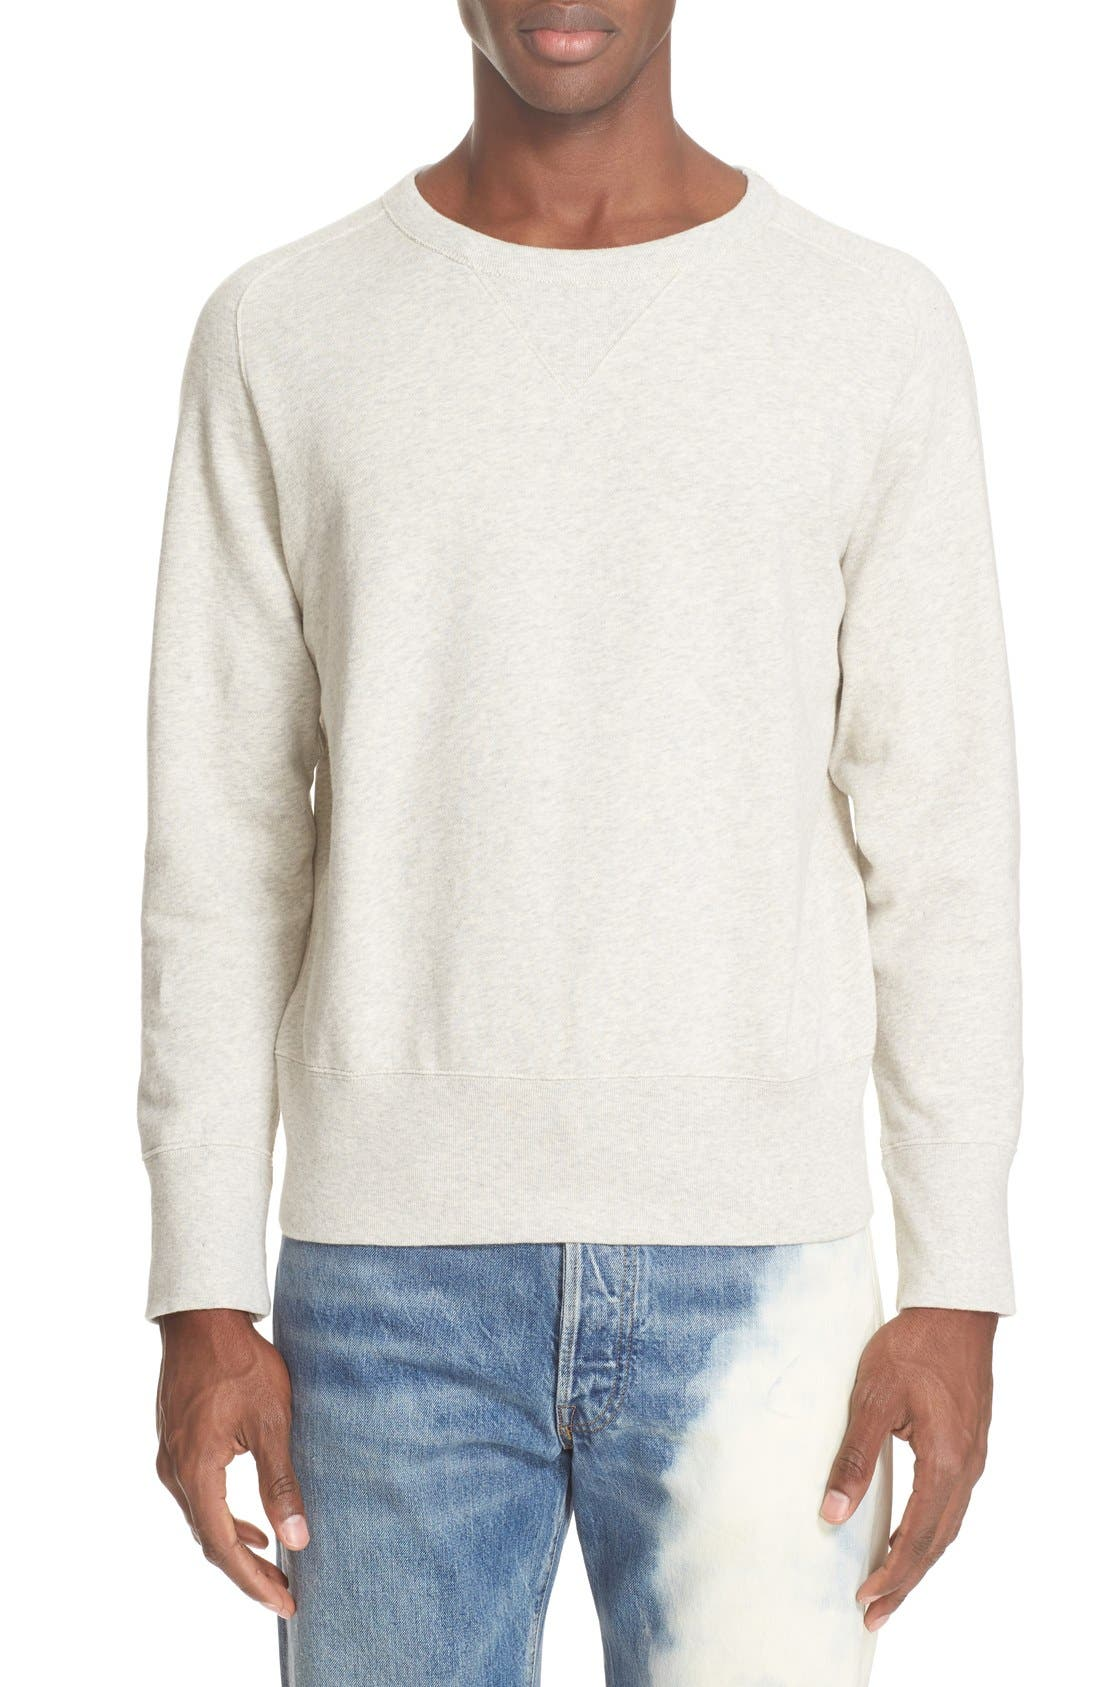 Bay Meadows Sweatshirt,                             Main thumbnail 1, color,                             100